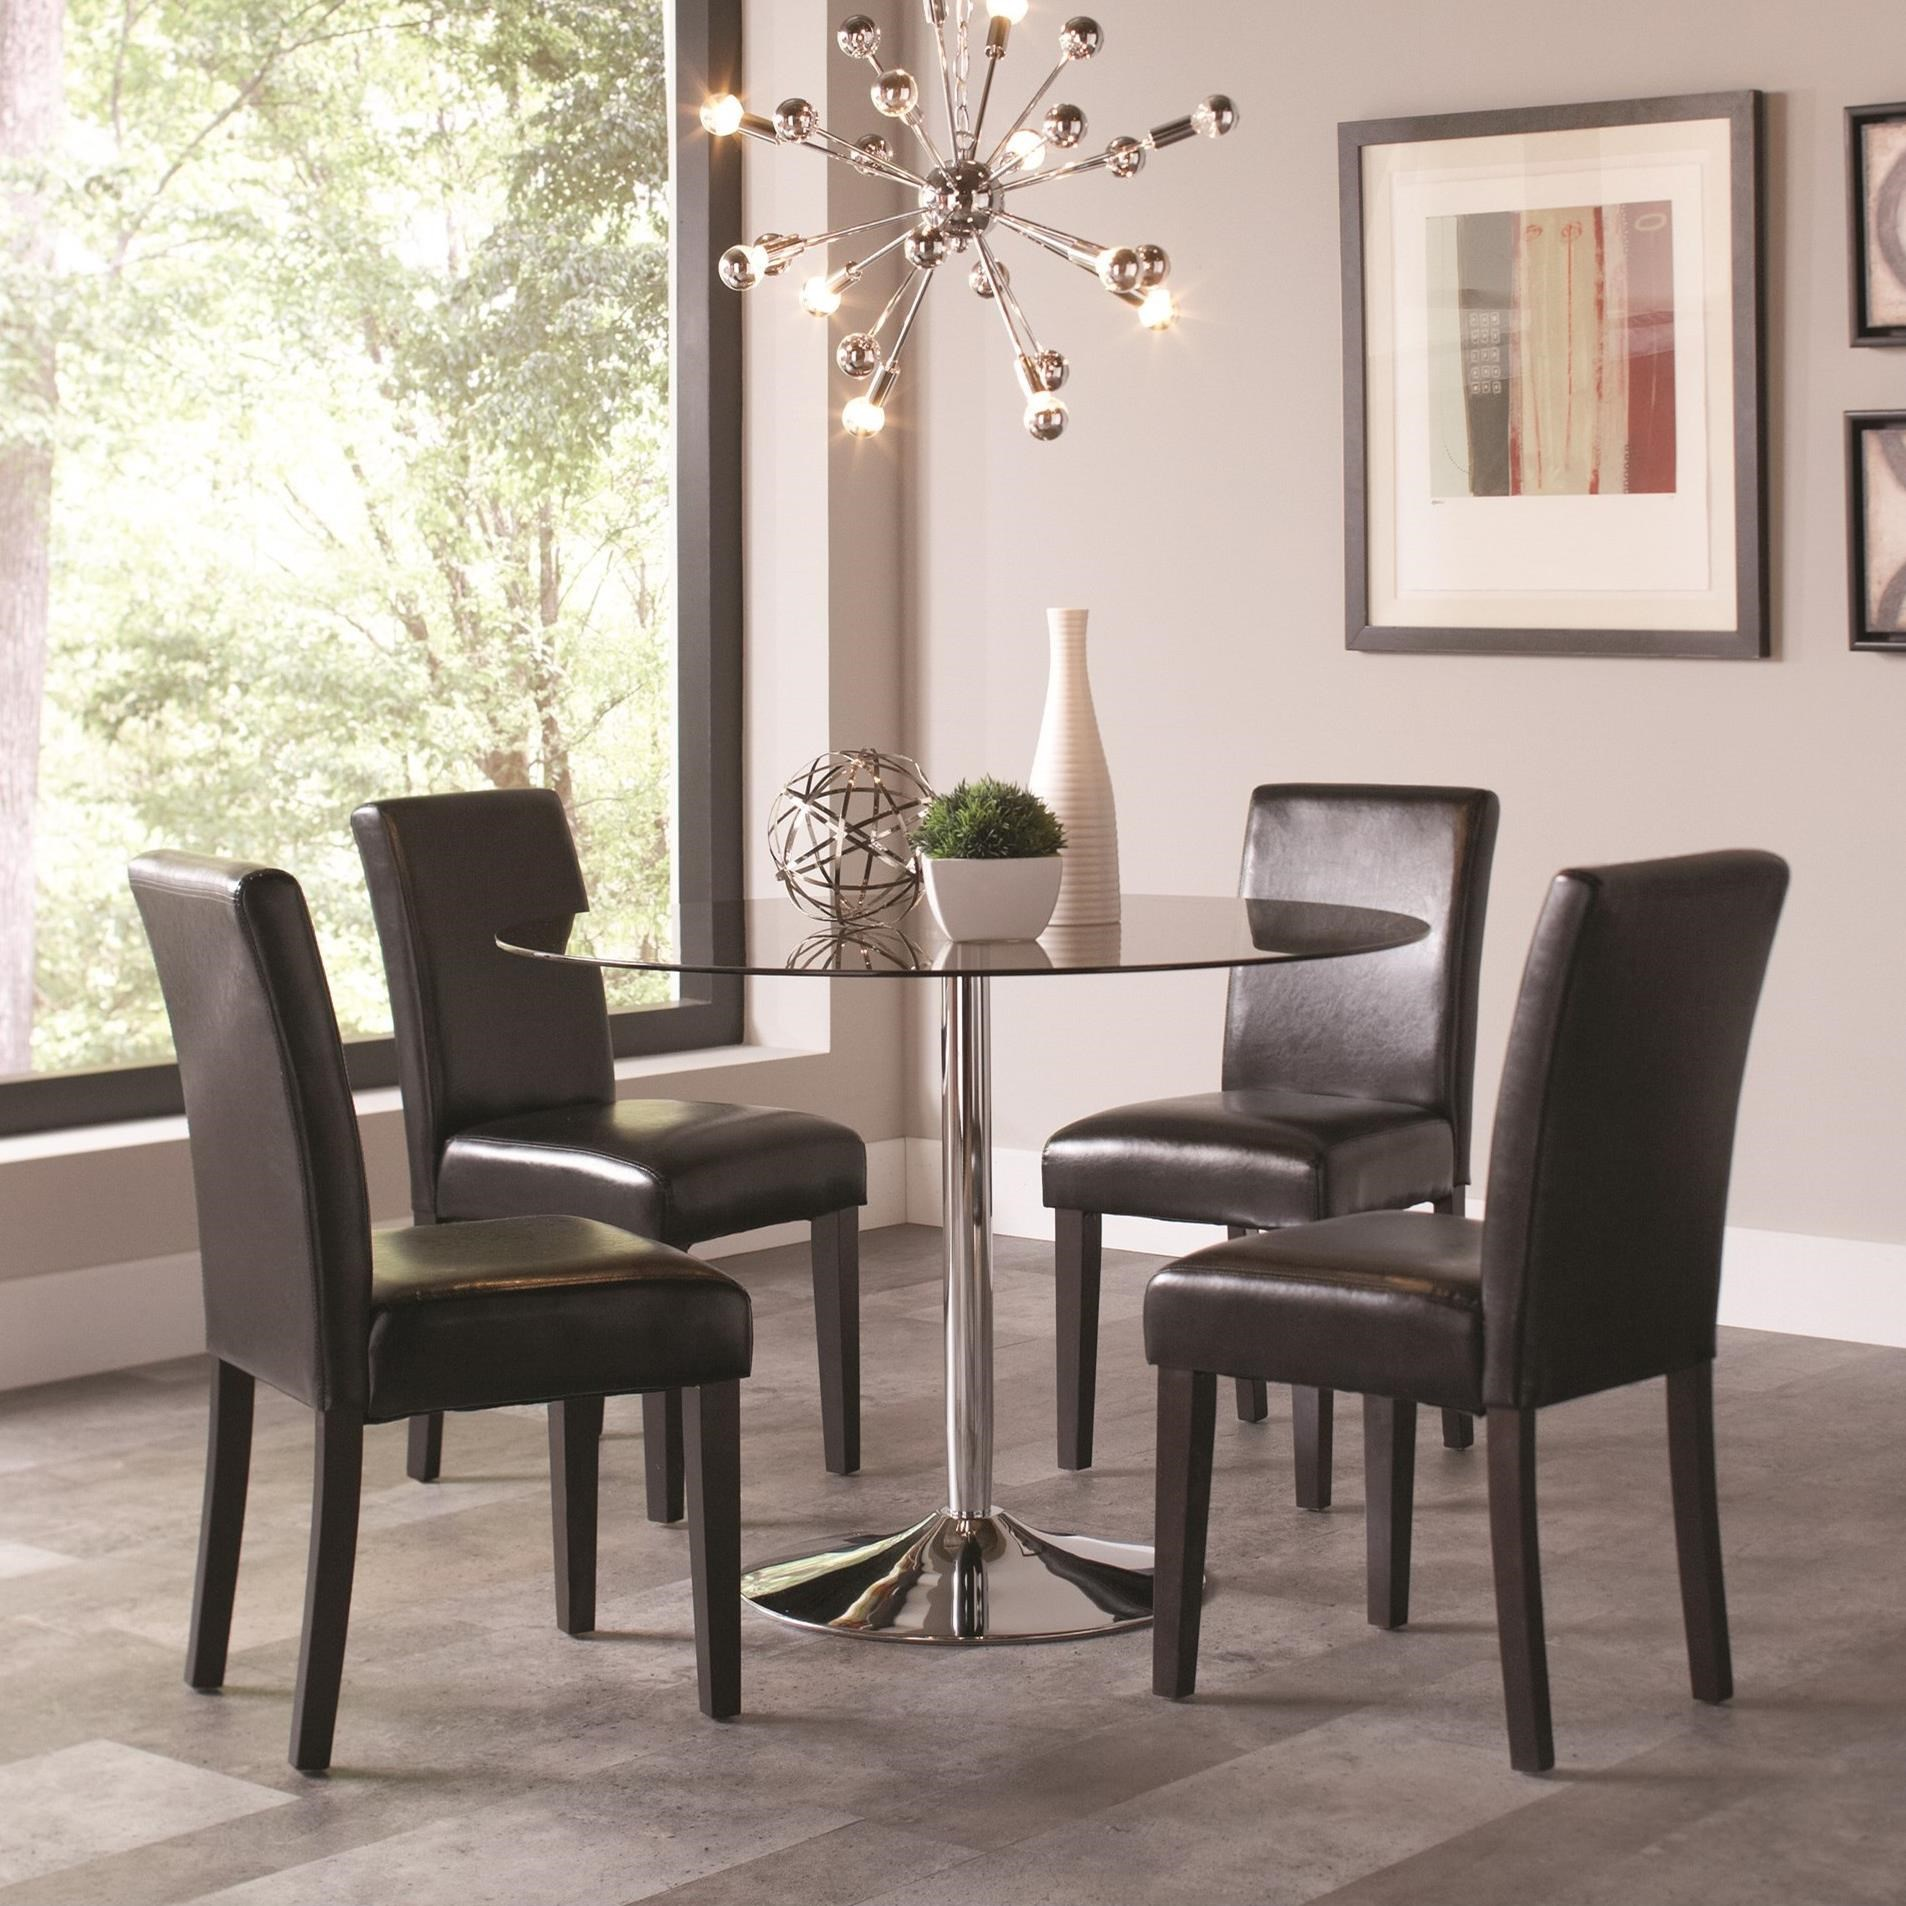 Coaster Clemente 5 Piece Round Table & Chair Set - Item Number: 103000+4x101785